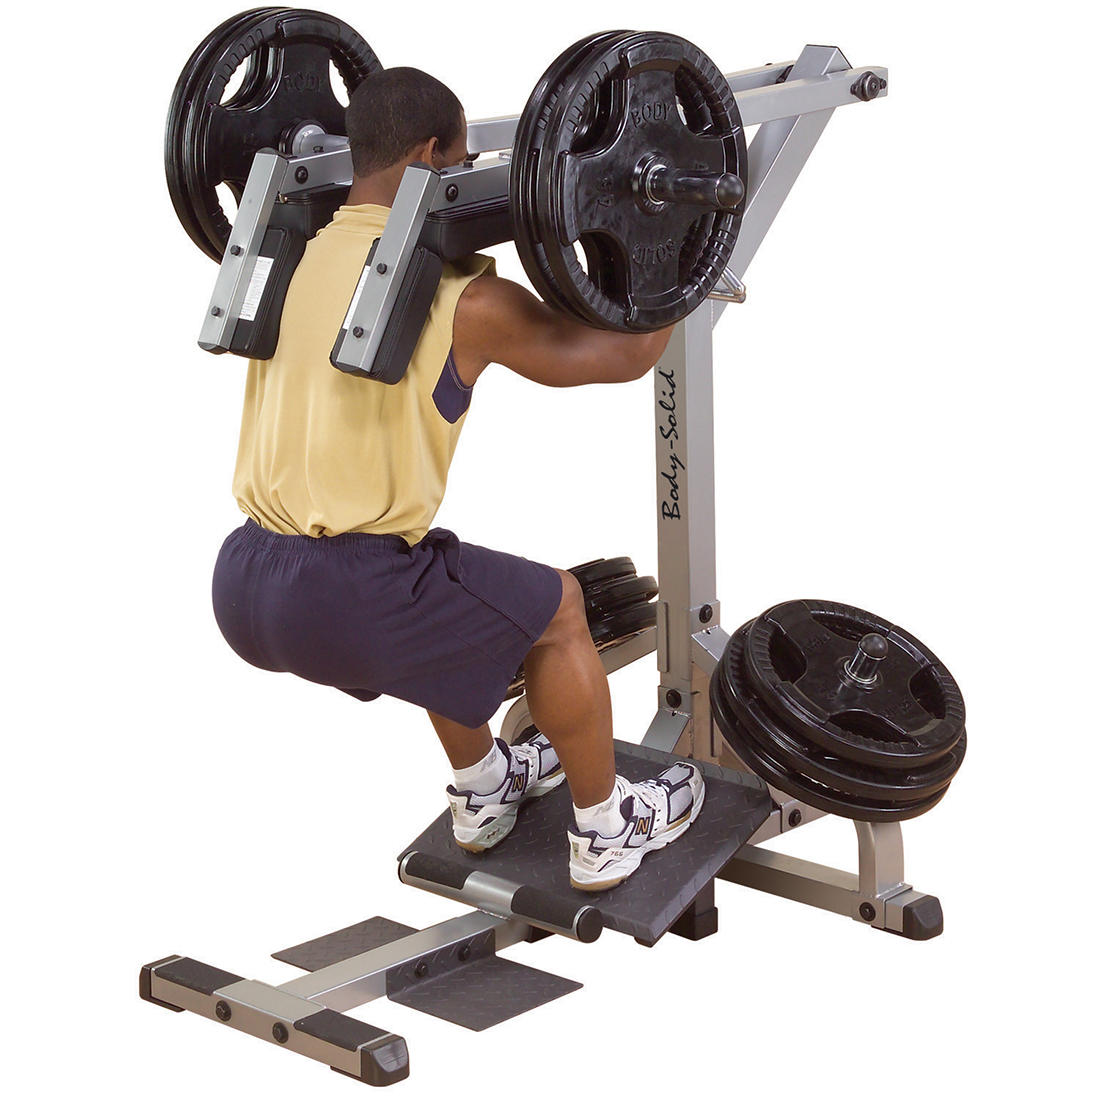 Dumbbell Stool Folding GOYAN Adjustable Weight Bench Incline Bench Fitness Bench Chest Expander Squat Rack Barbell Rack Gym Supine Board Pastor Stool